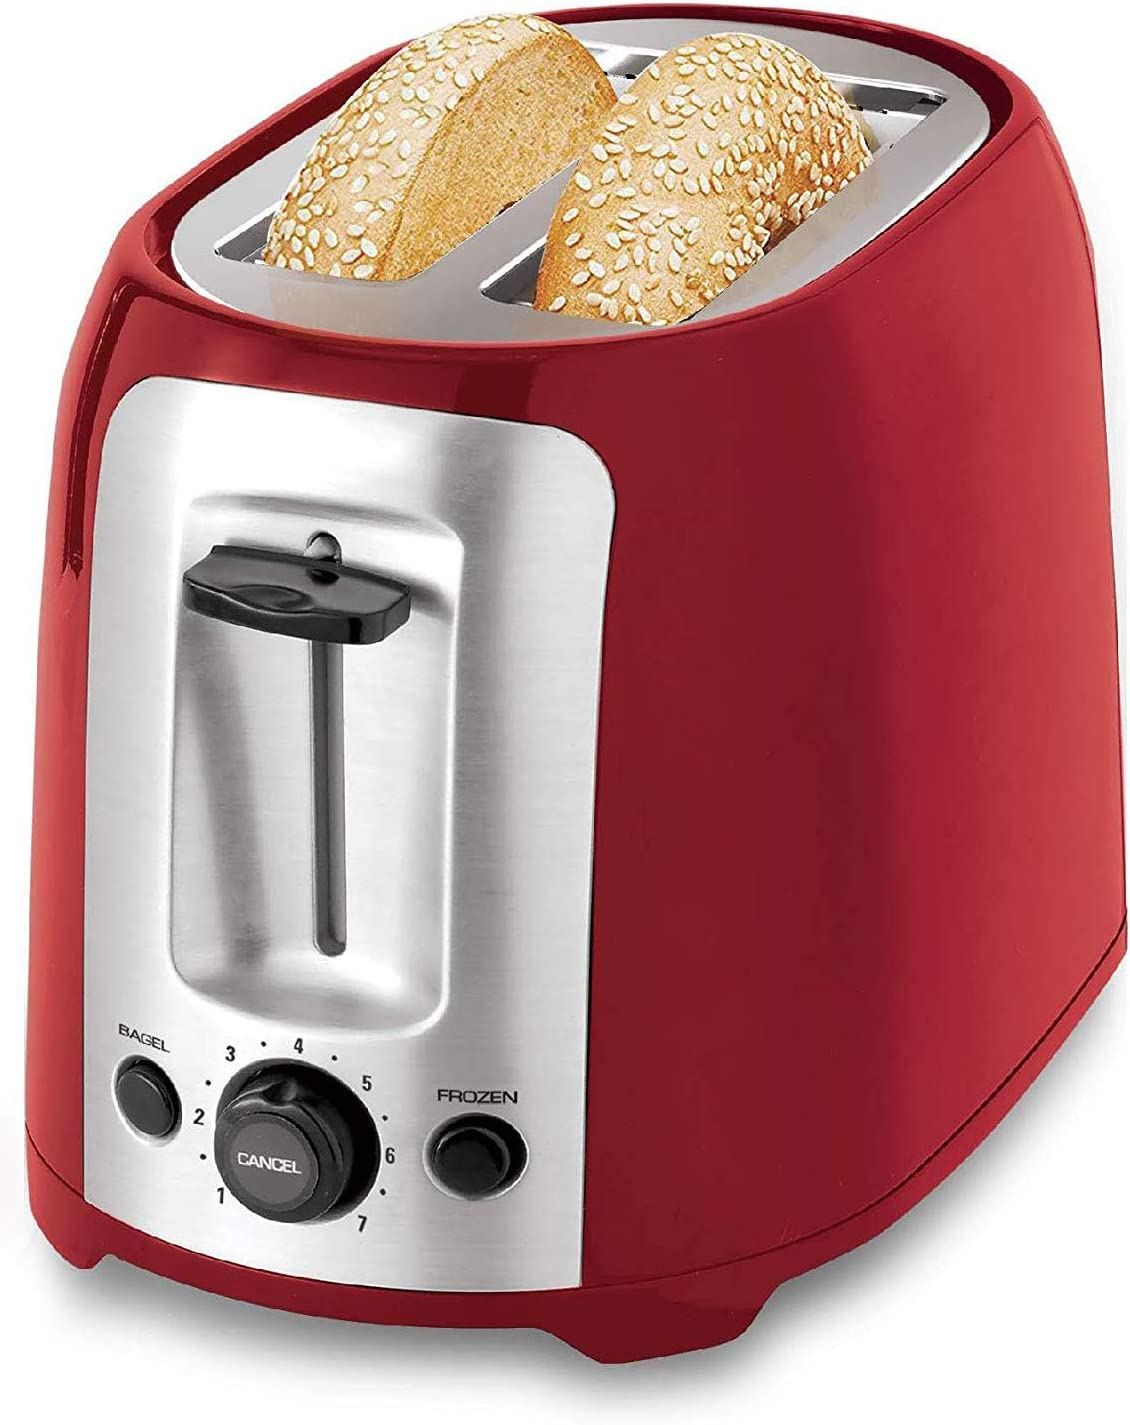 Culinary Edge 2-Slice Extra Wide Slots With High Lift Lever Toaster - Stainless Steel Accents with 2-Years Warranty (Red)